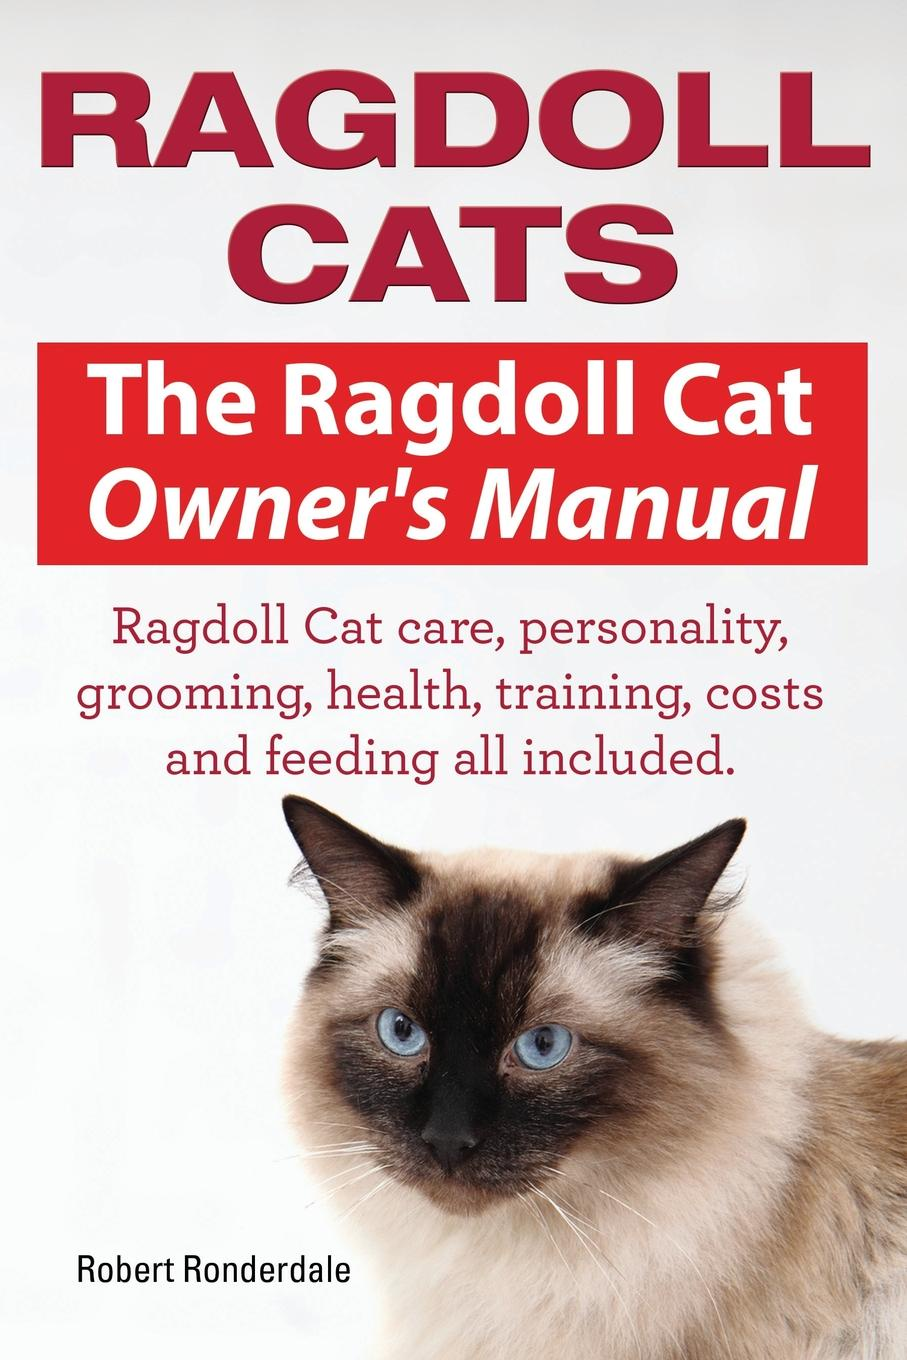 Фото - Ronderdale Robert Ragdoll Cats. The Ragdoll Cat Owners Manual. Ragdoll Cat care, personality, grooming, health, training, costs and feeding all included. ragdoll